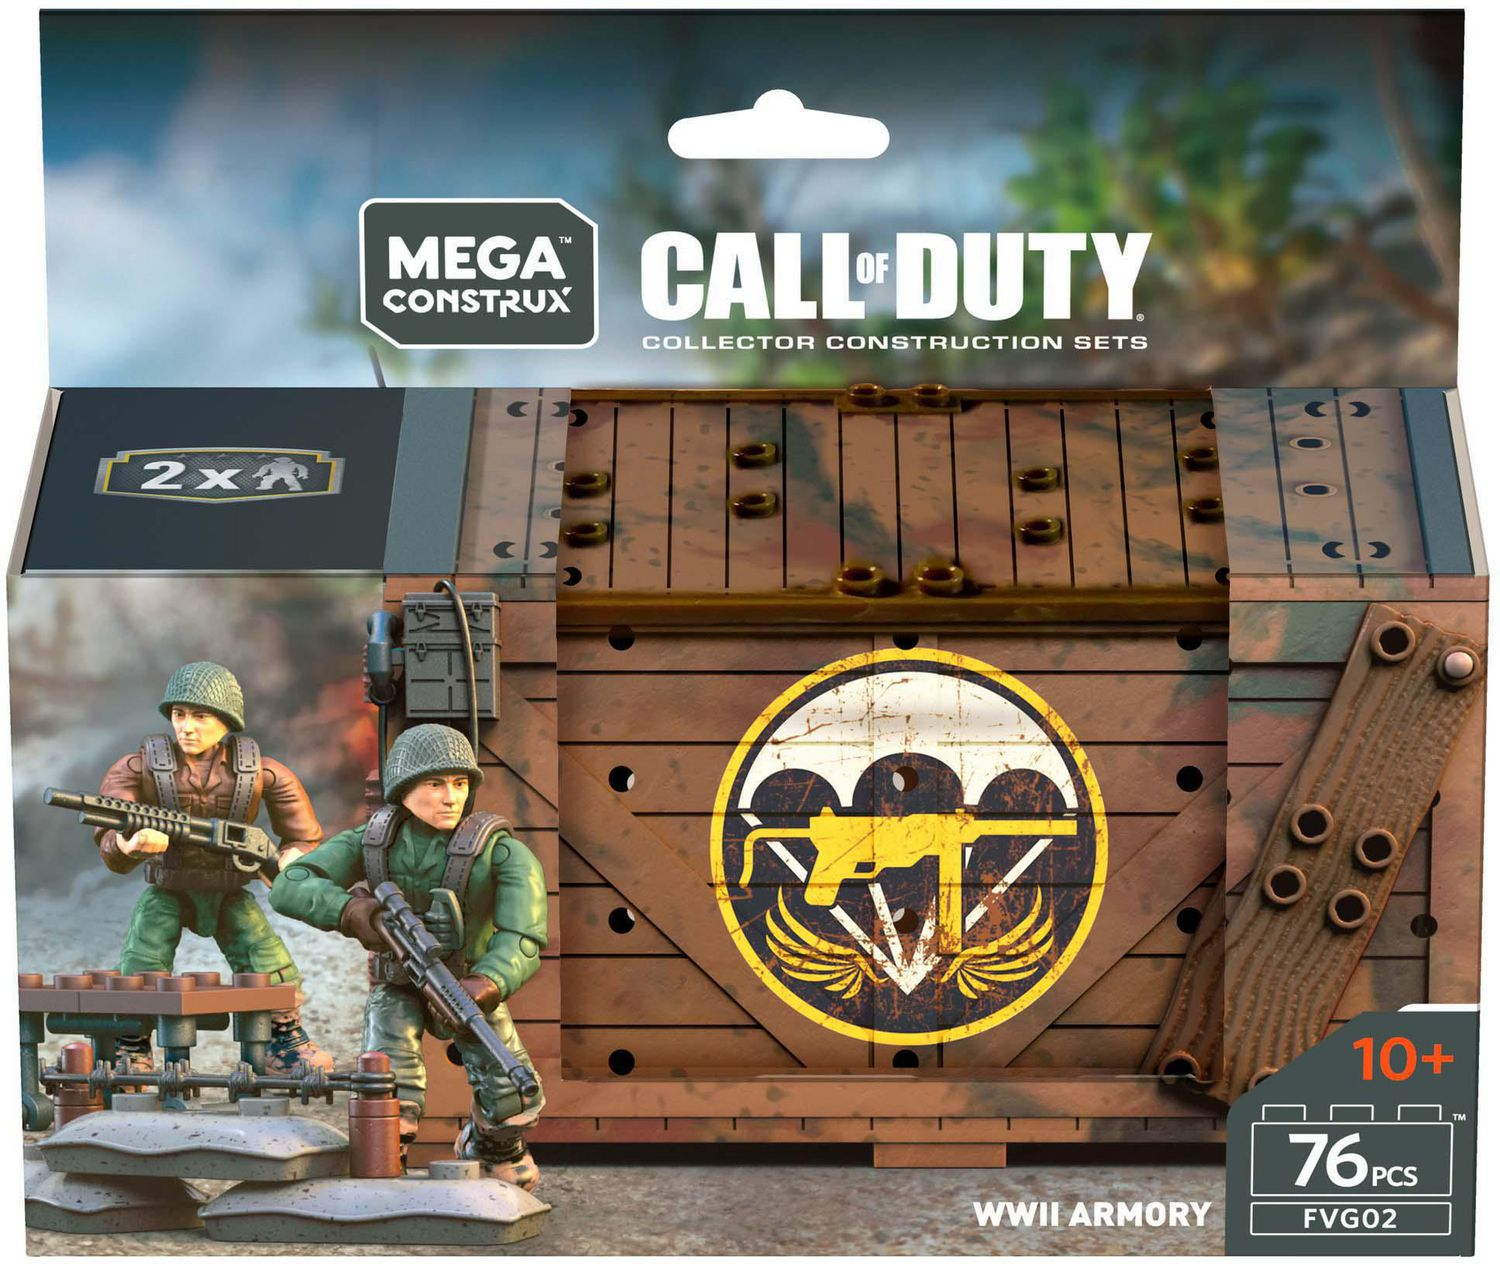 Mega Construx - Call of Duty - WWII Armory (FVG02)